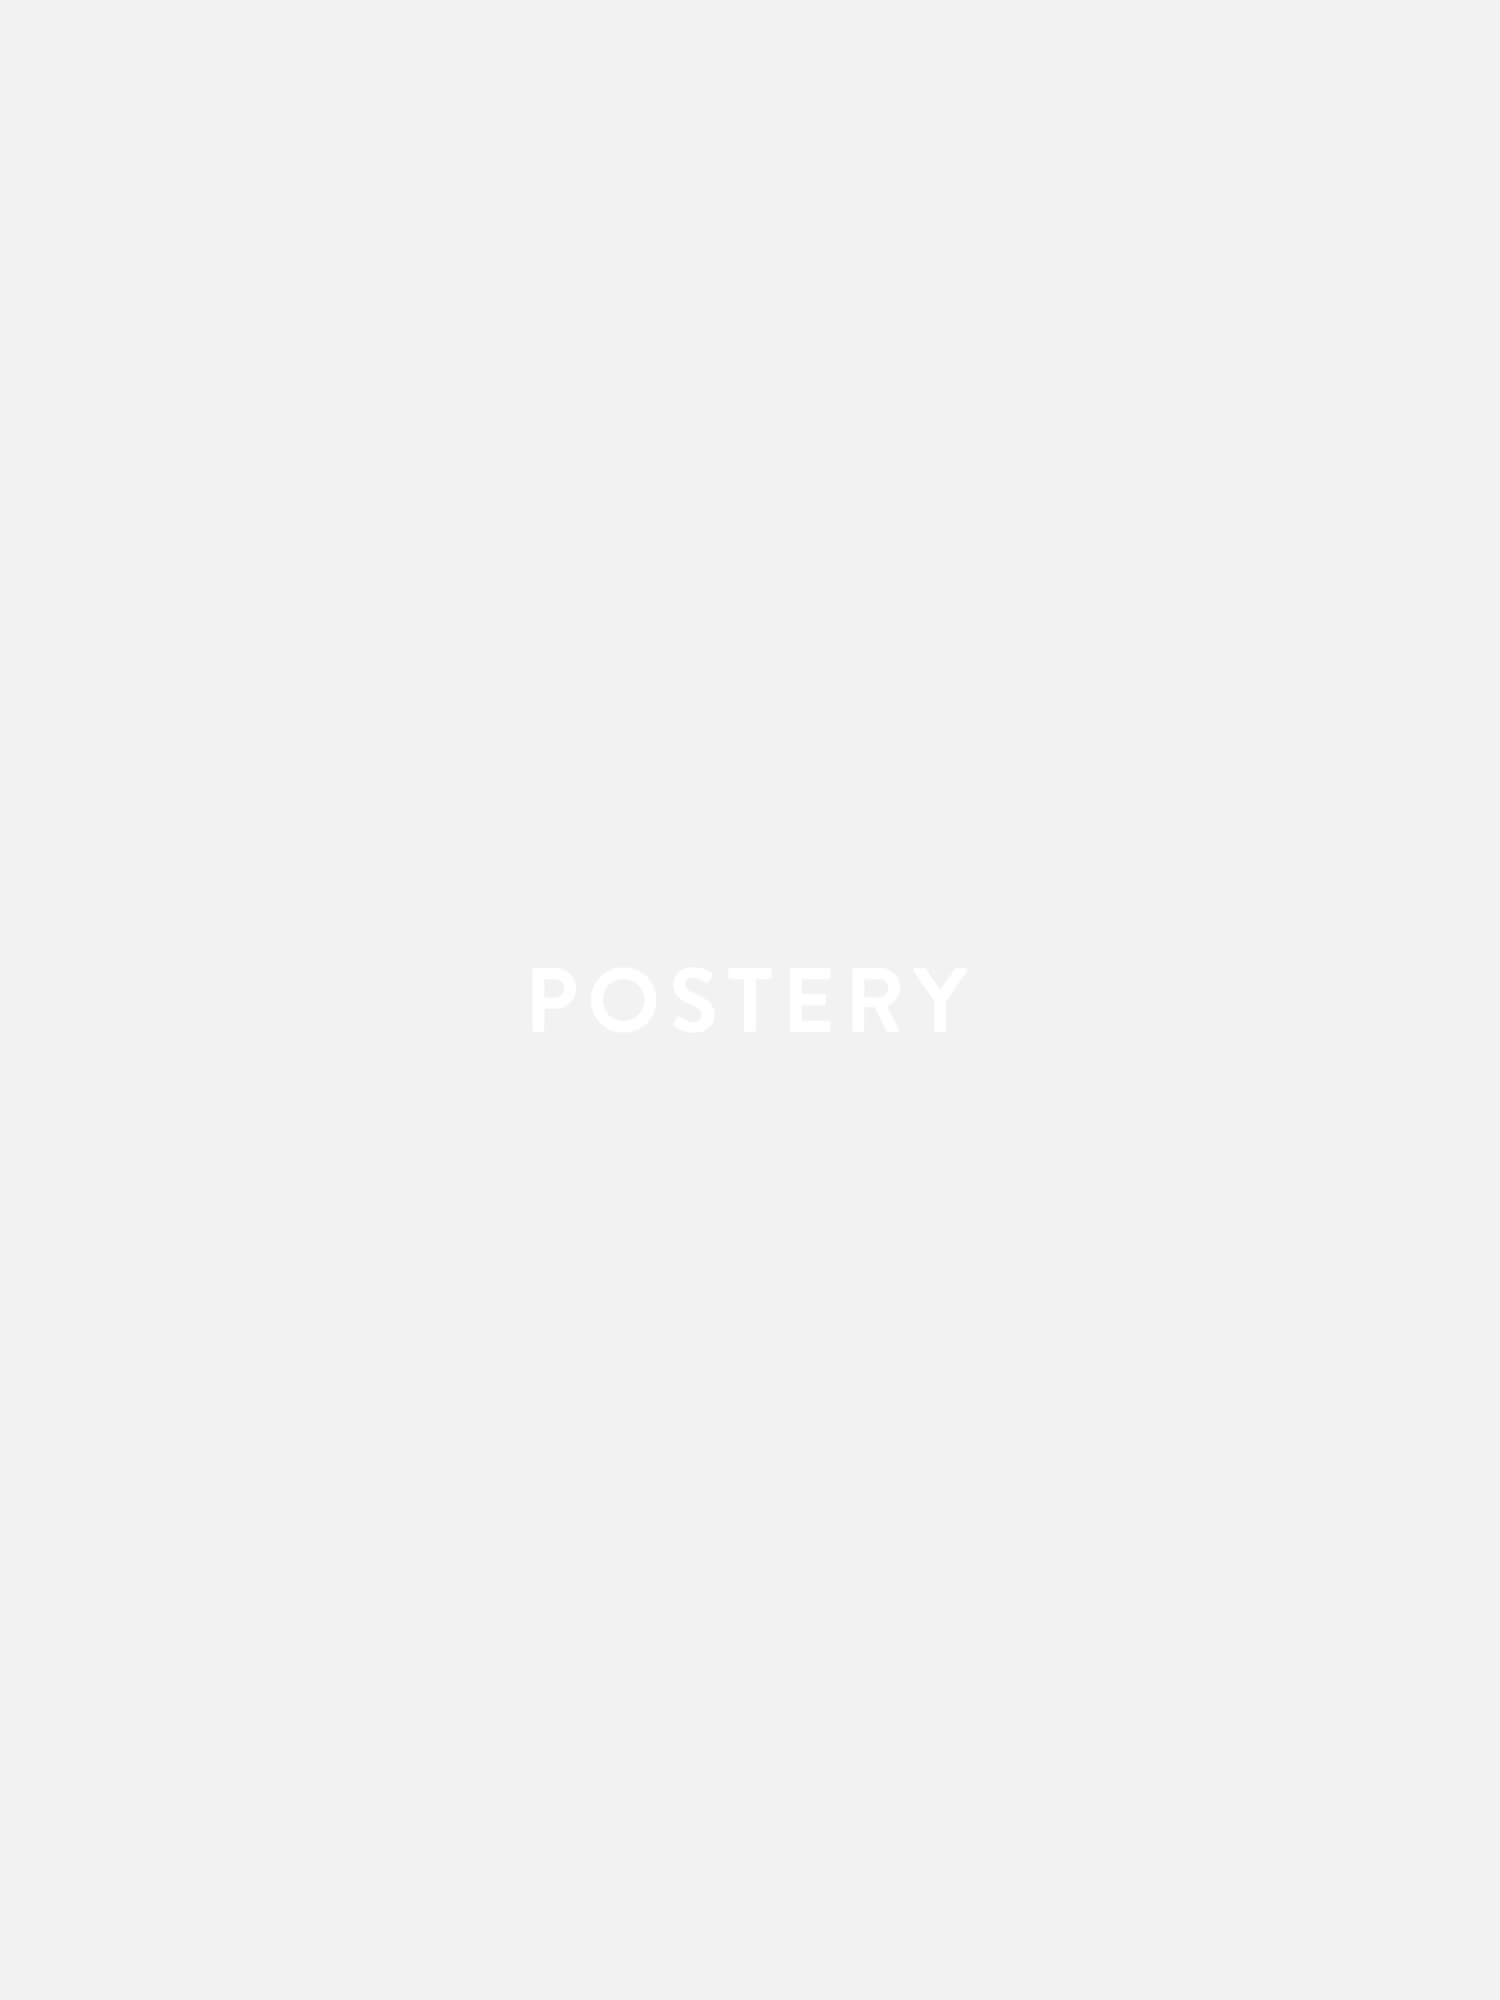 Sitting Leopard Poster